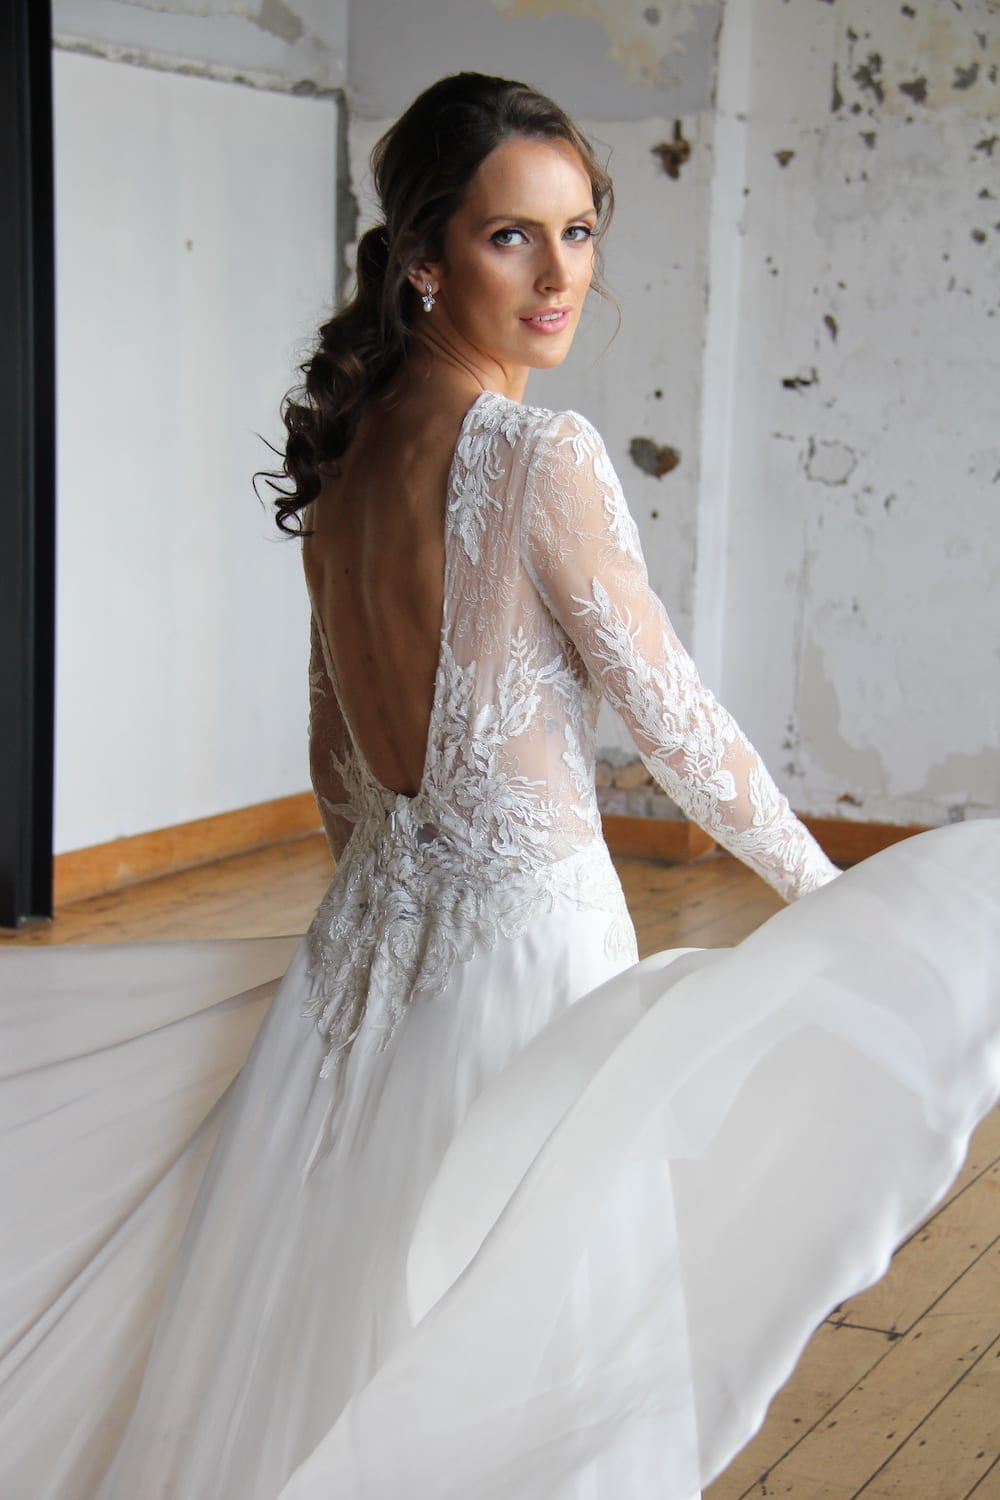 Female model wearing Vinka Design Modern Muse Wedding Dress. In chic warehouse the back detail of a gown with a high neckline and low back in silver-edged ivory lace, silk chiffon over viscose skirt with a train.